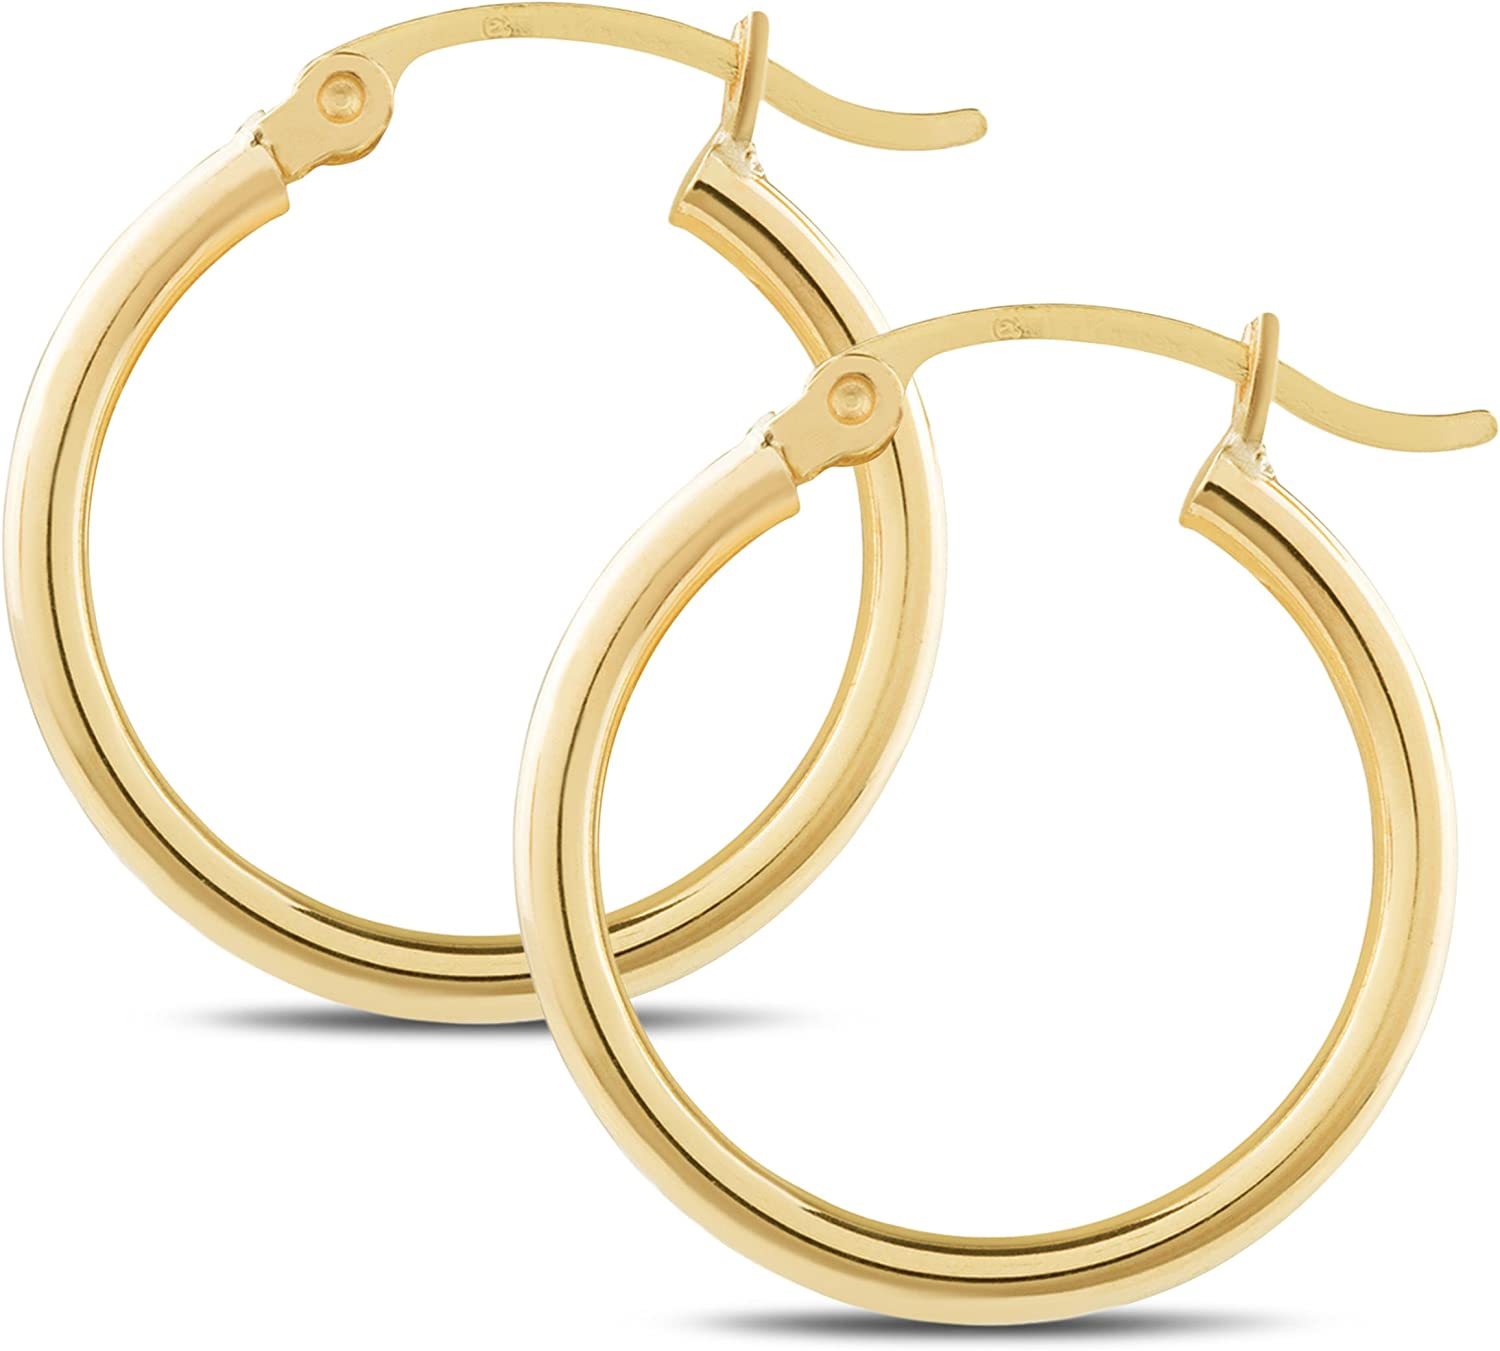 14K Yellow Gold Classic Shiny Polished Round Hoop Womens Earrings, 2mm - 3mm tube, 10mm - 65mm Diameter